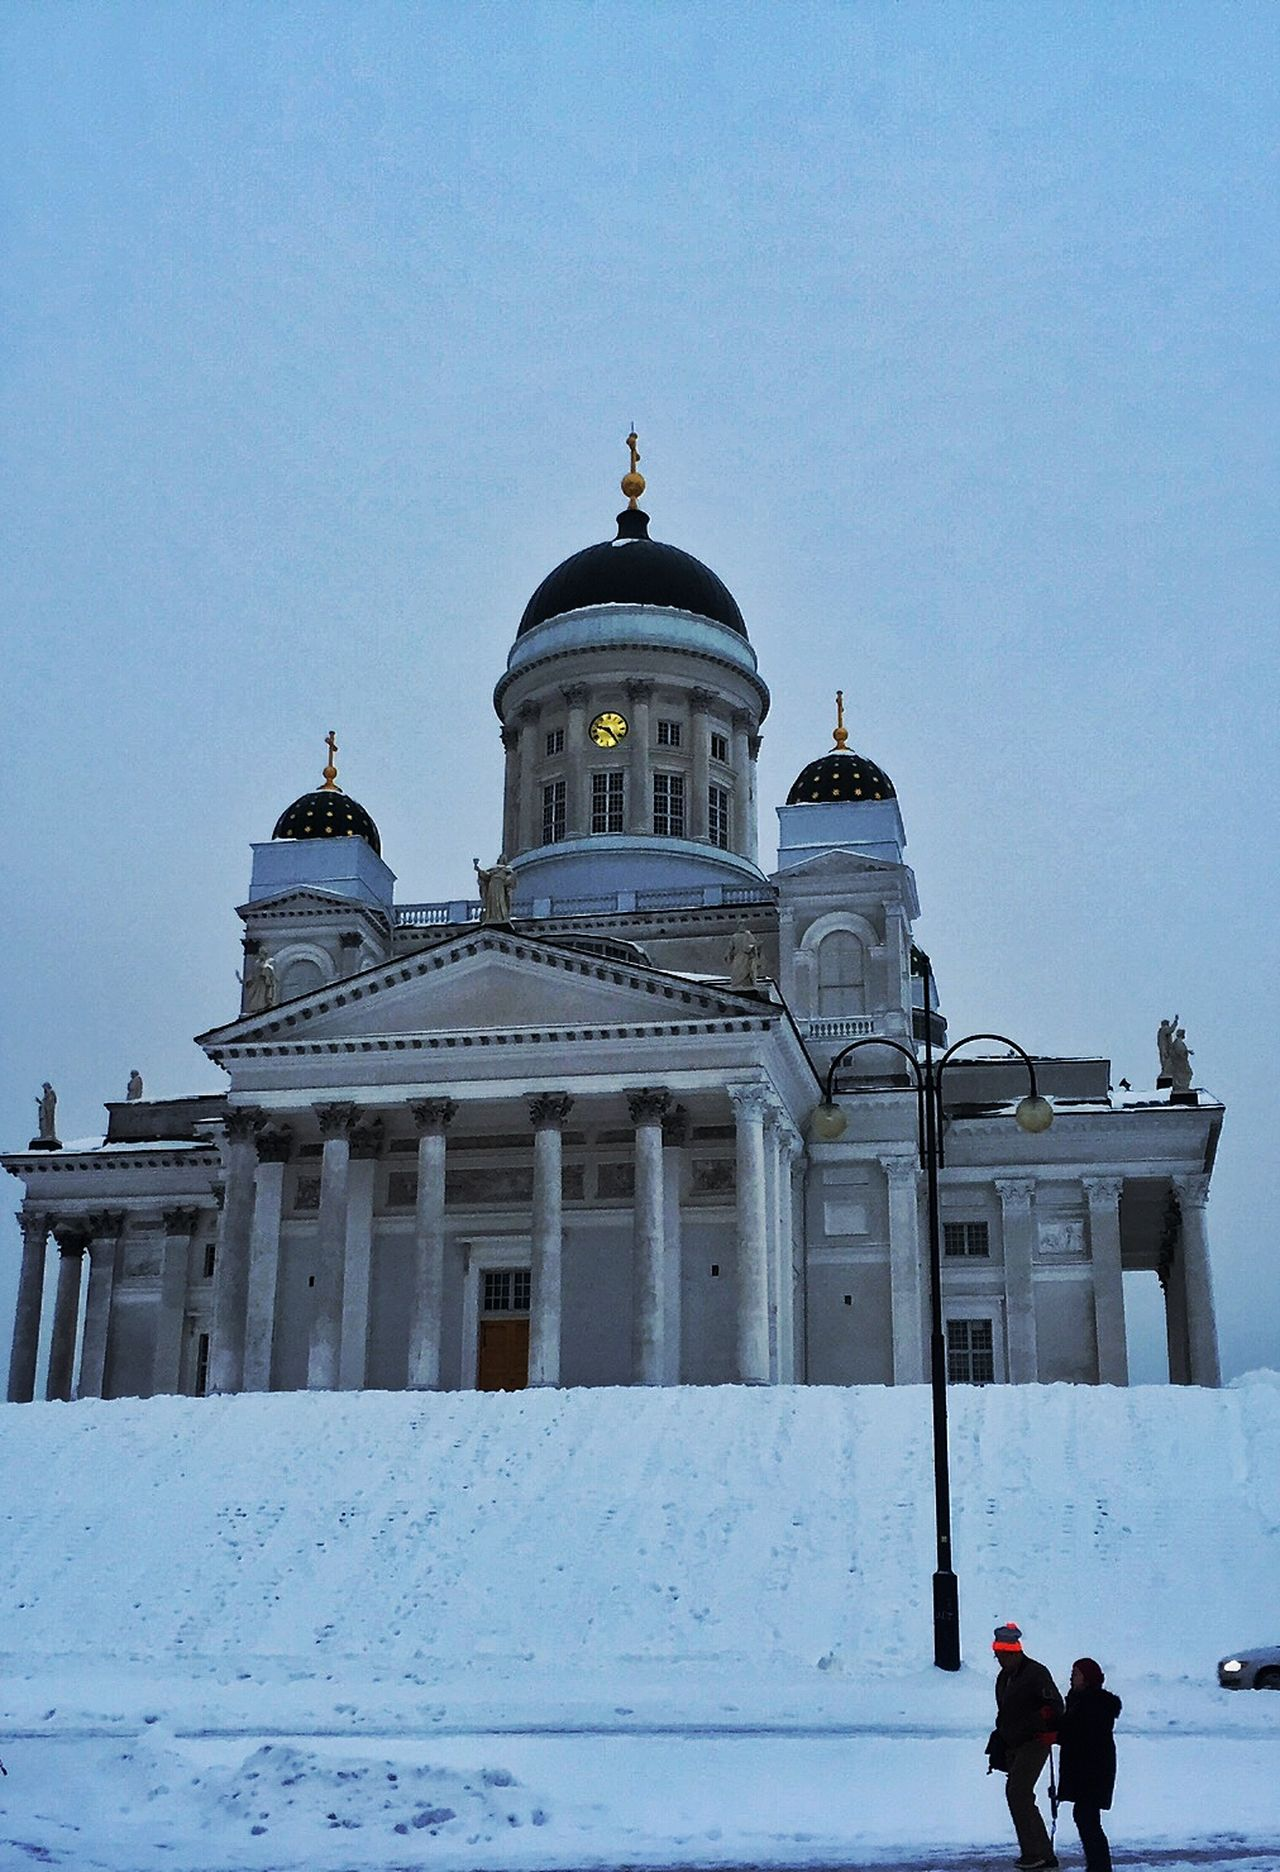 IPS2016Winter Winterscapes Winter Wonderland Helsinki Cathedral Sojourn IntotheArticCircle Helsinki,finland Aurora Chasing IPS2016Blue LLLimages Iphonephotography Iphone6 IPS2016People Showcase March